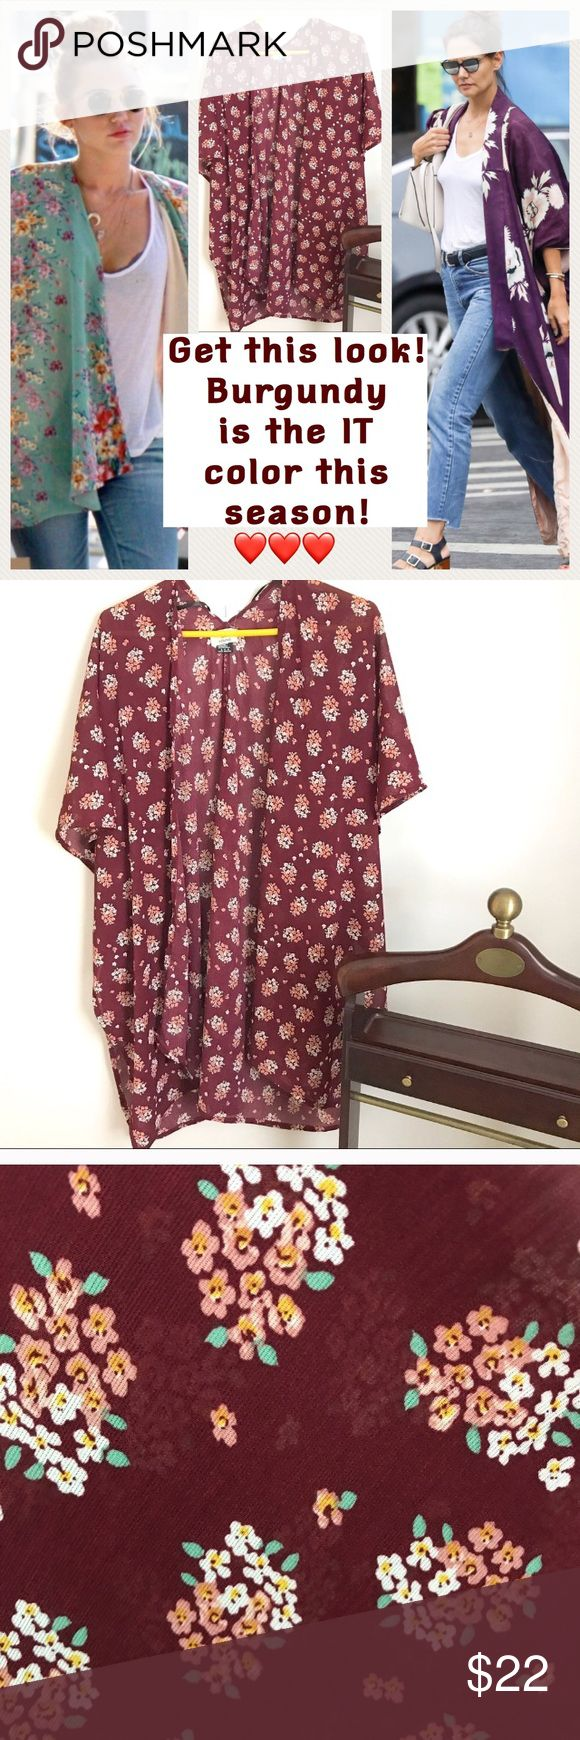 NWT Autumn Colors Outfit Topper Wear with jeans, shorts, or over skirts and dresses. Get the look! NO TRADES OR OFF POSH TRANSACTIONS. THANKS Von Maur Tops